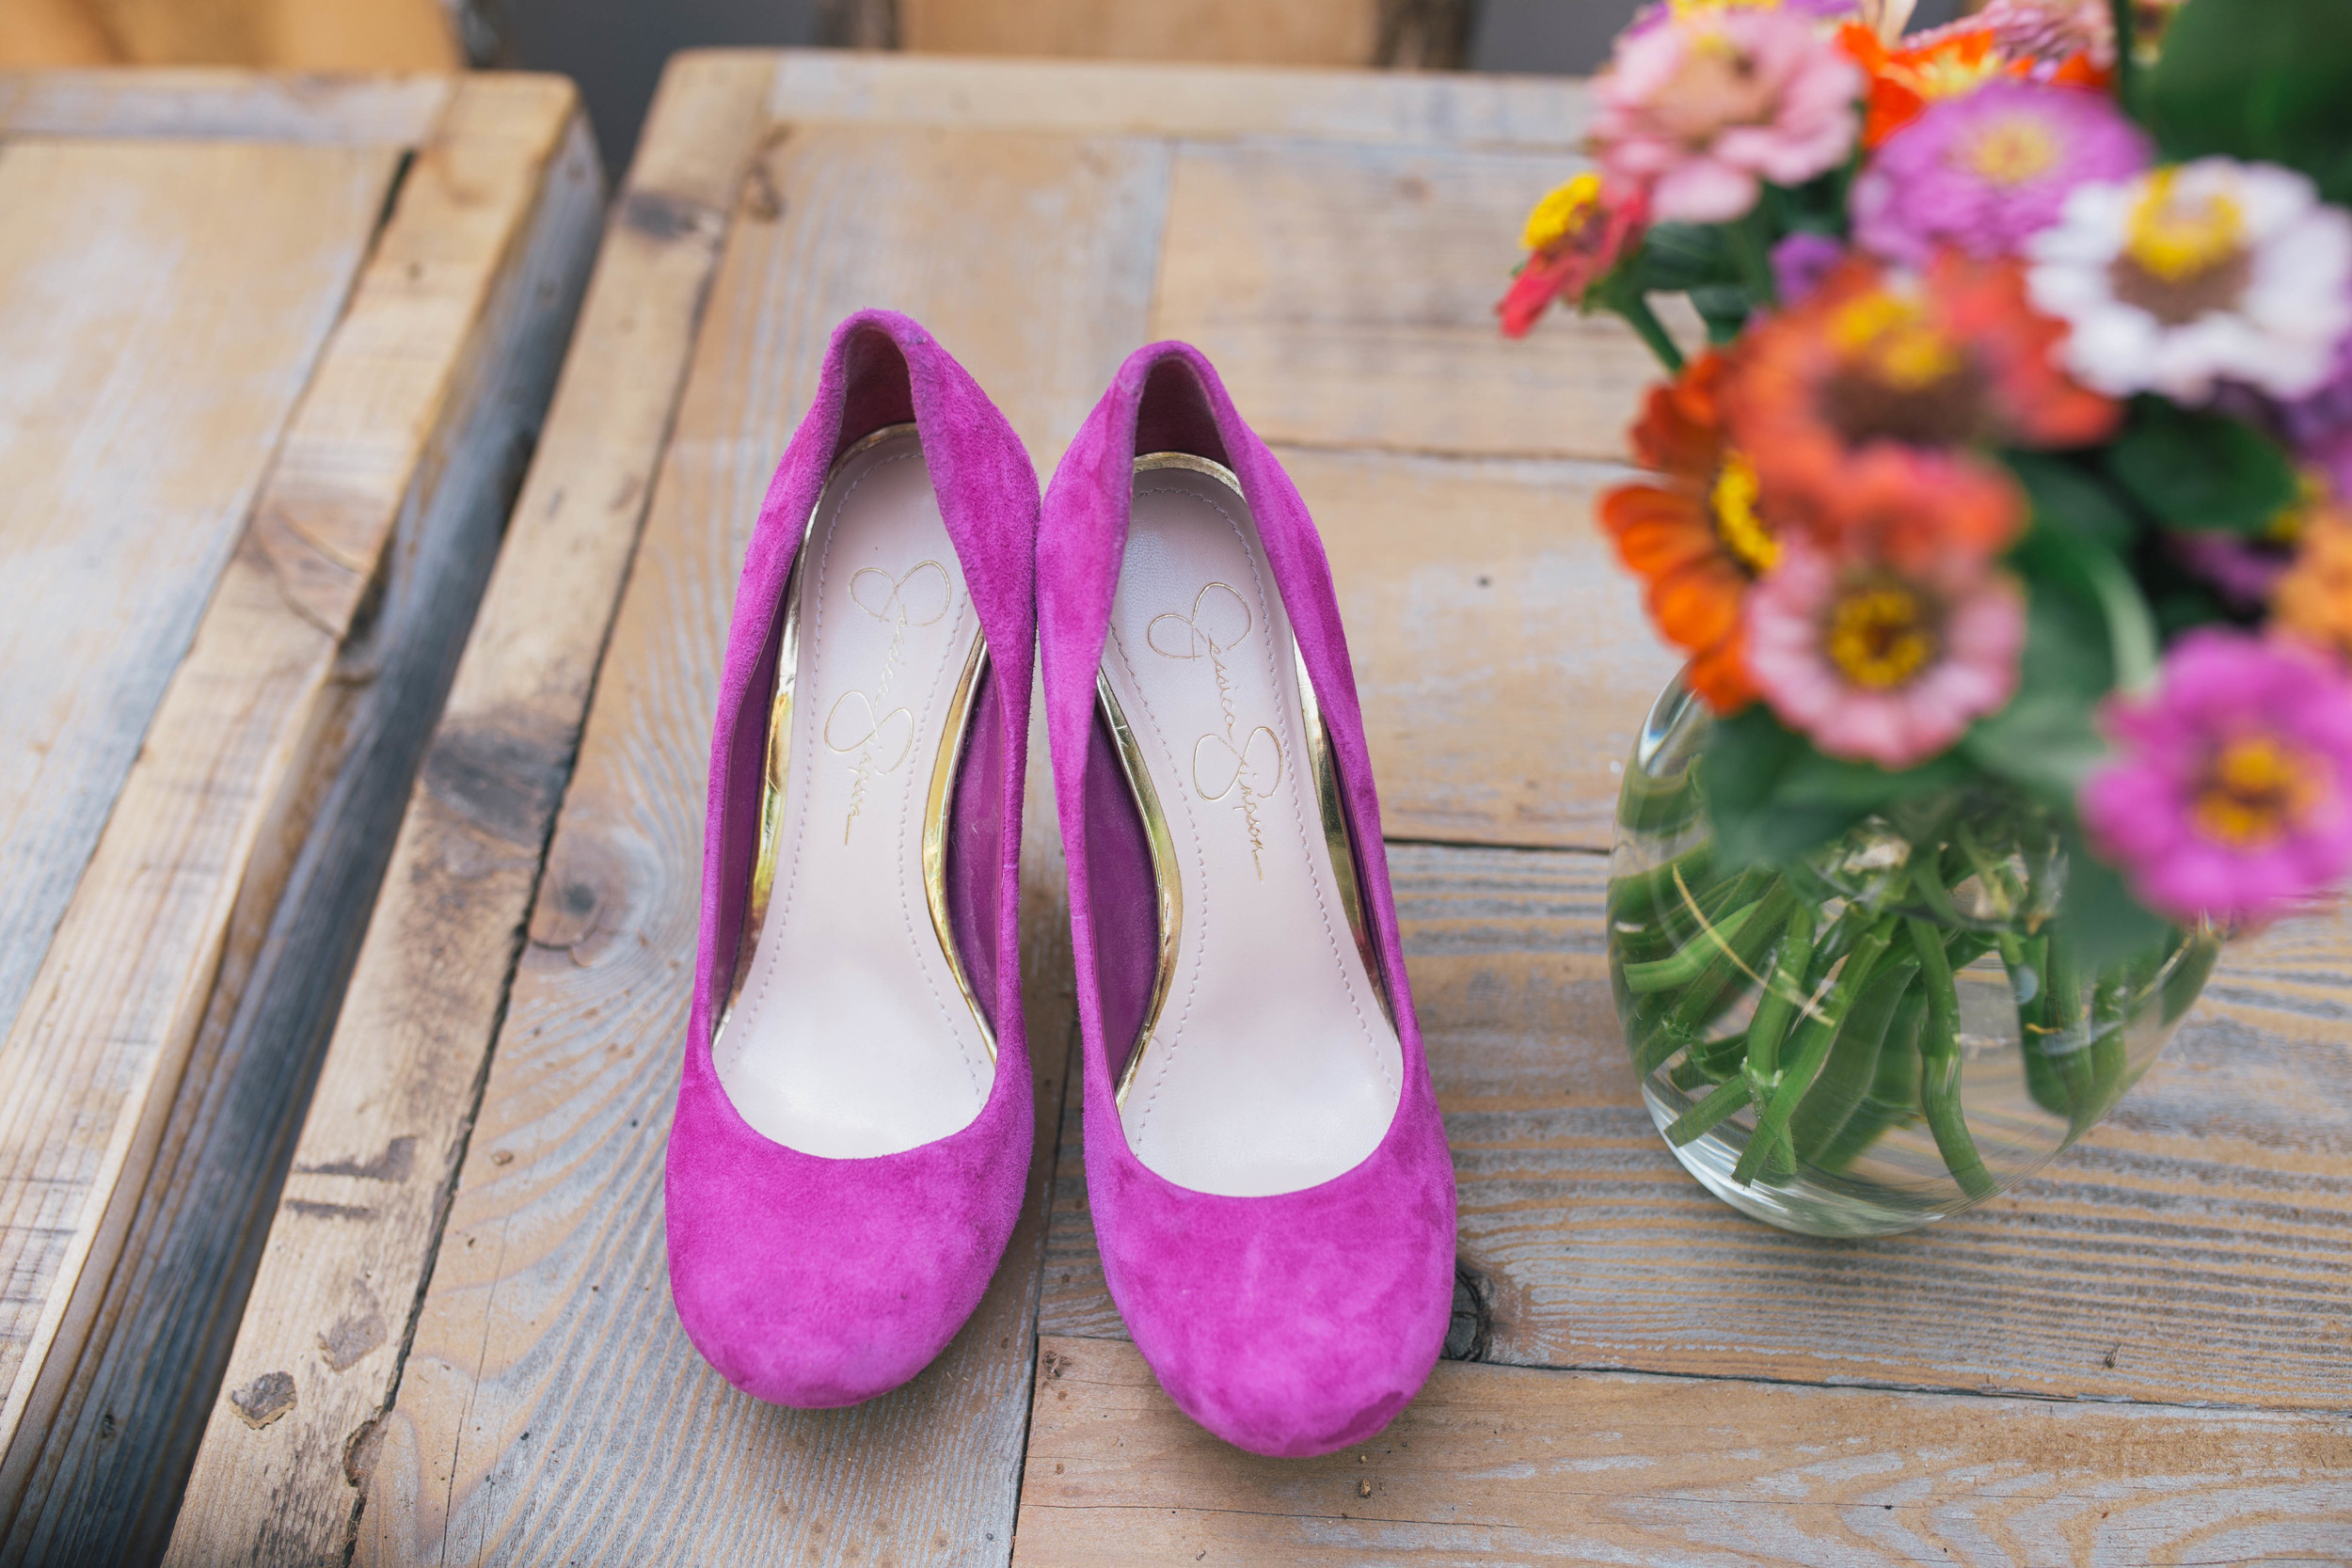 sonoma-county-wedding-photographer-details-backyard-shoes-flowers